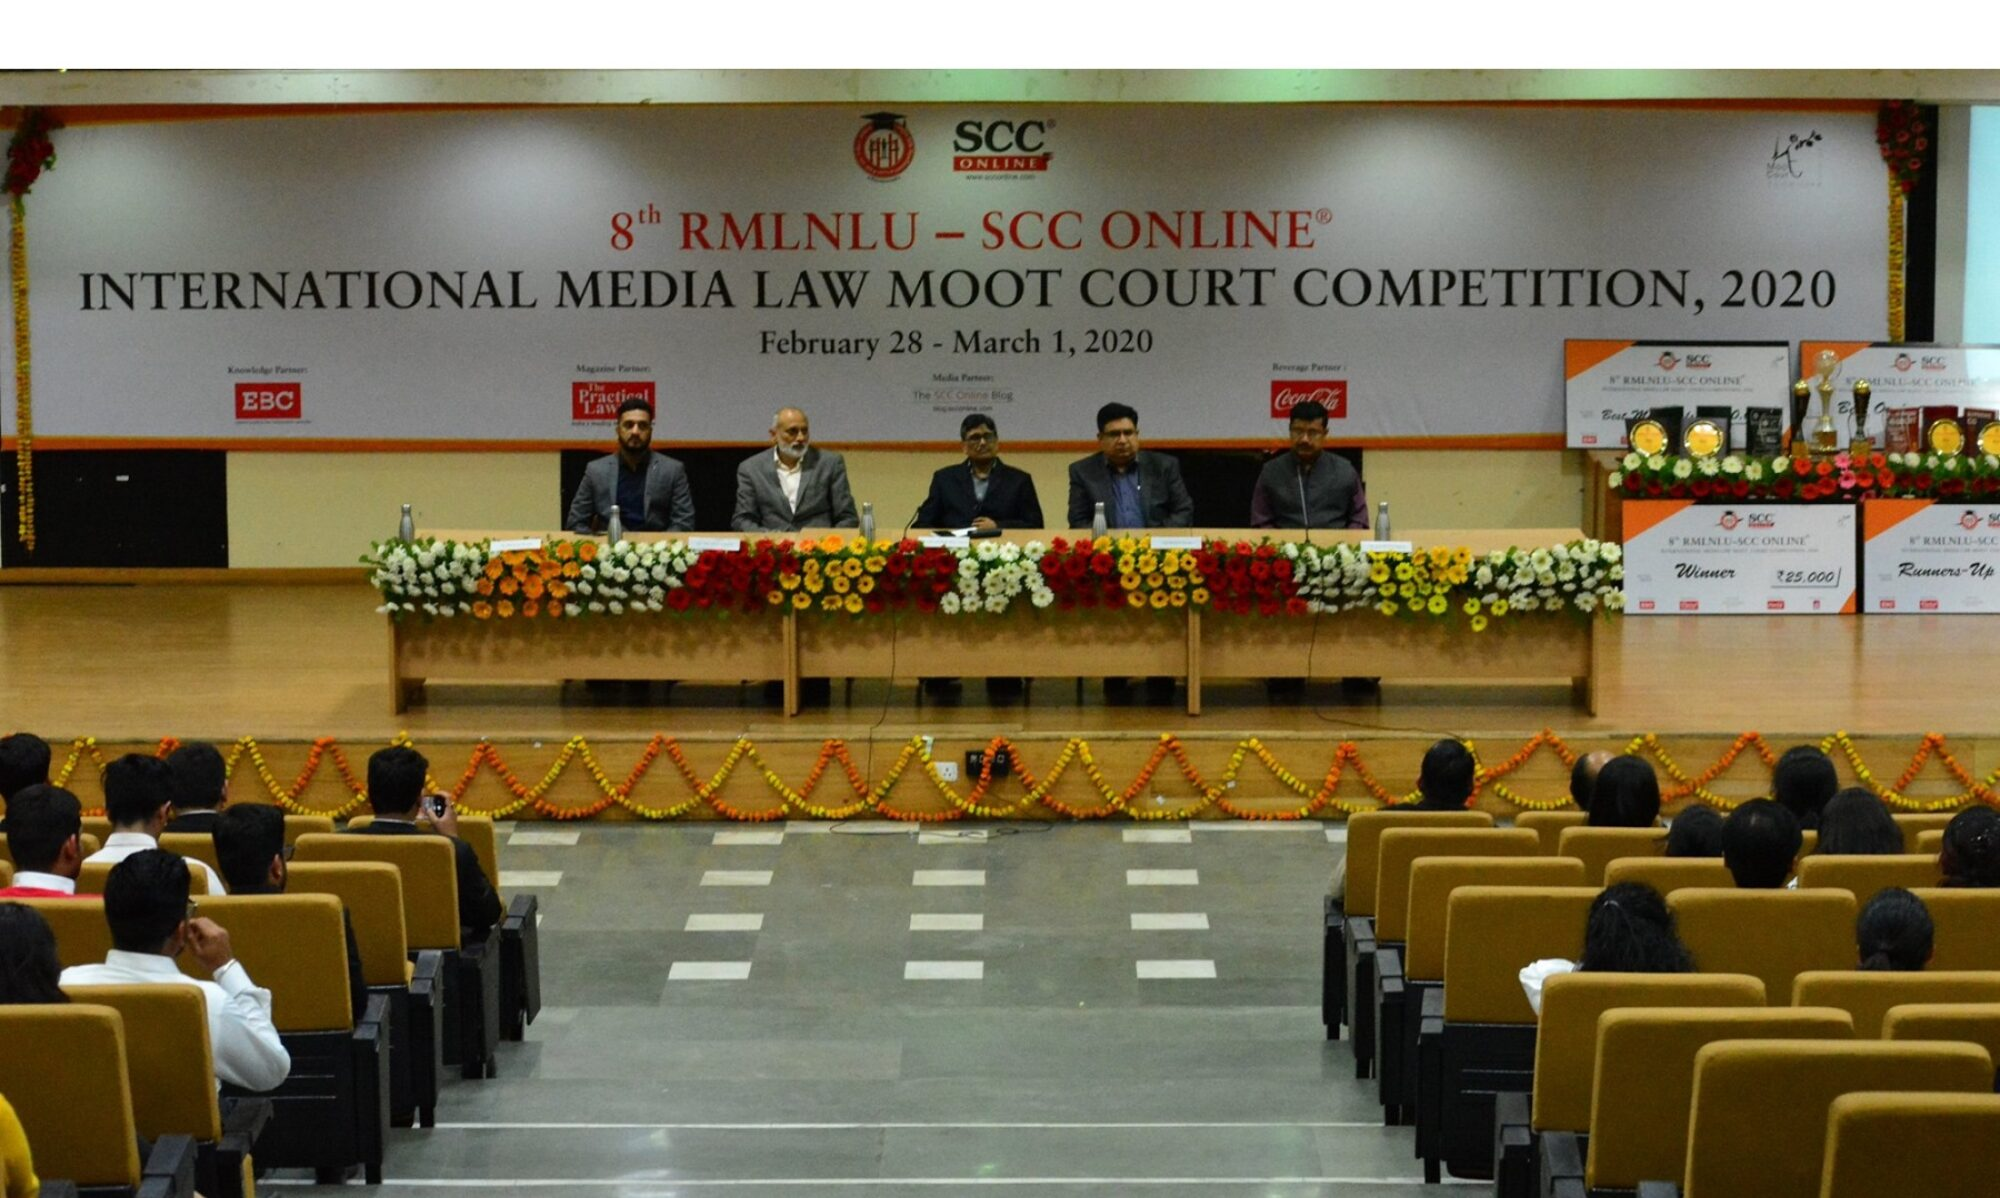 RMLNLU-SCC Online® International Media Law Moot Court Competition, 2021